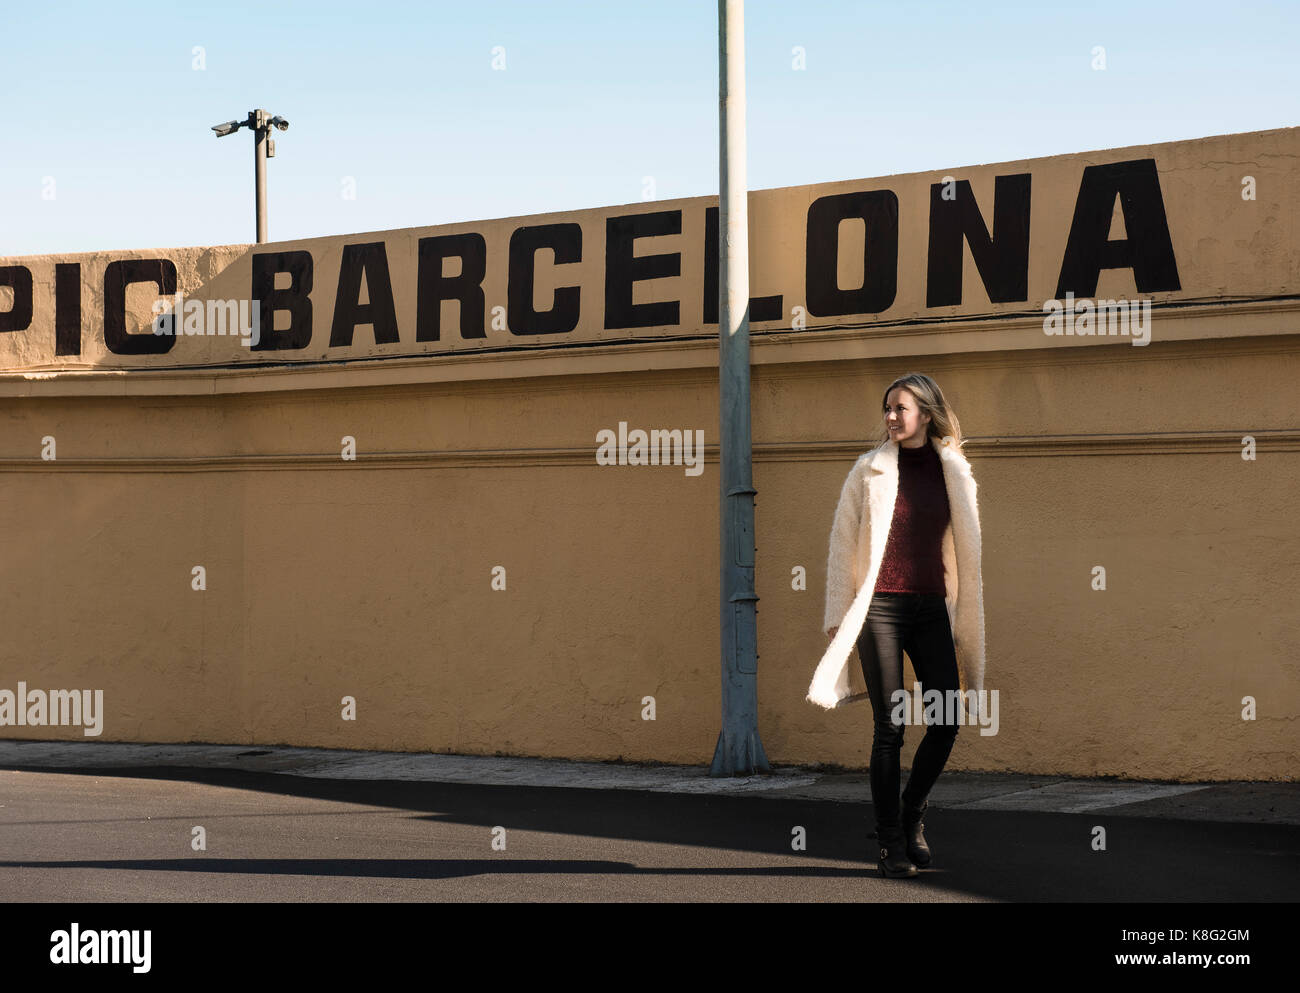 Female tourist strolling by wall with Barcelona in capital letters, Barcelona, Spain - Stock Image